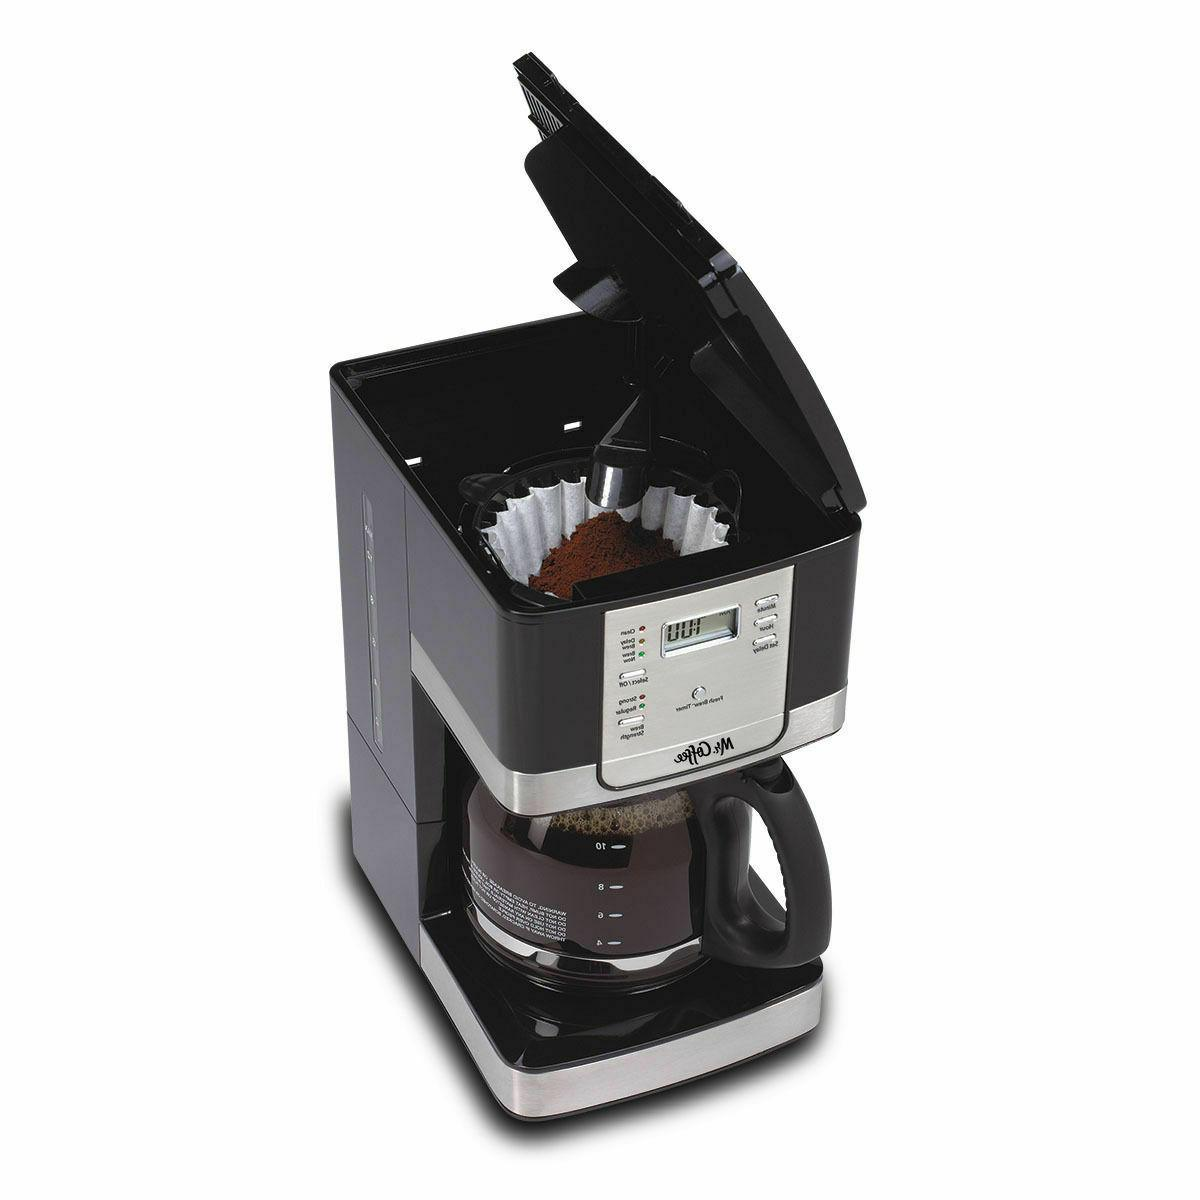 12-Cup Programmable Coffee Maker Black/Stainless Steel Mr. C